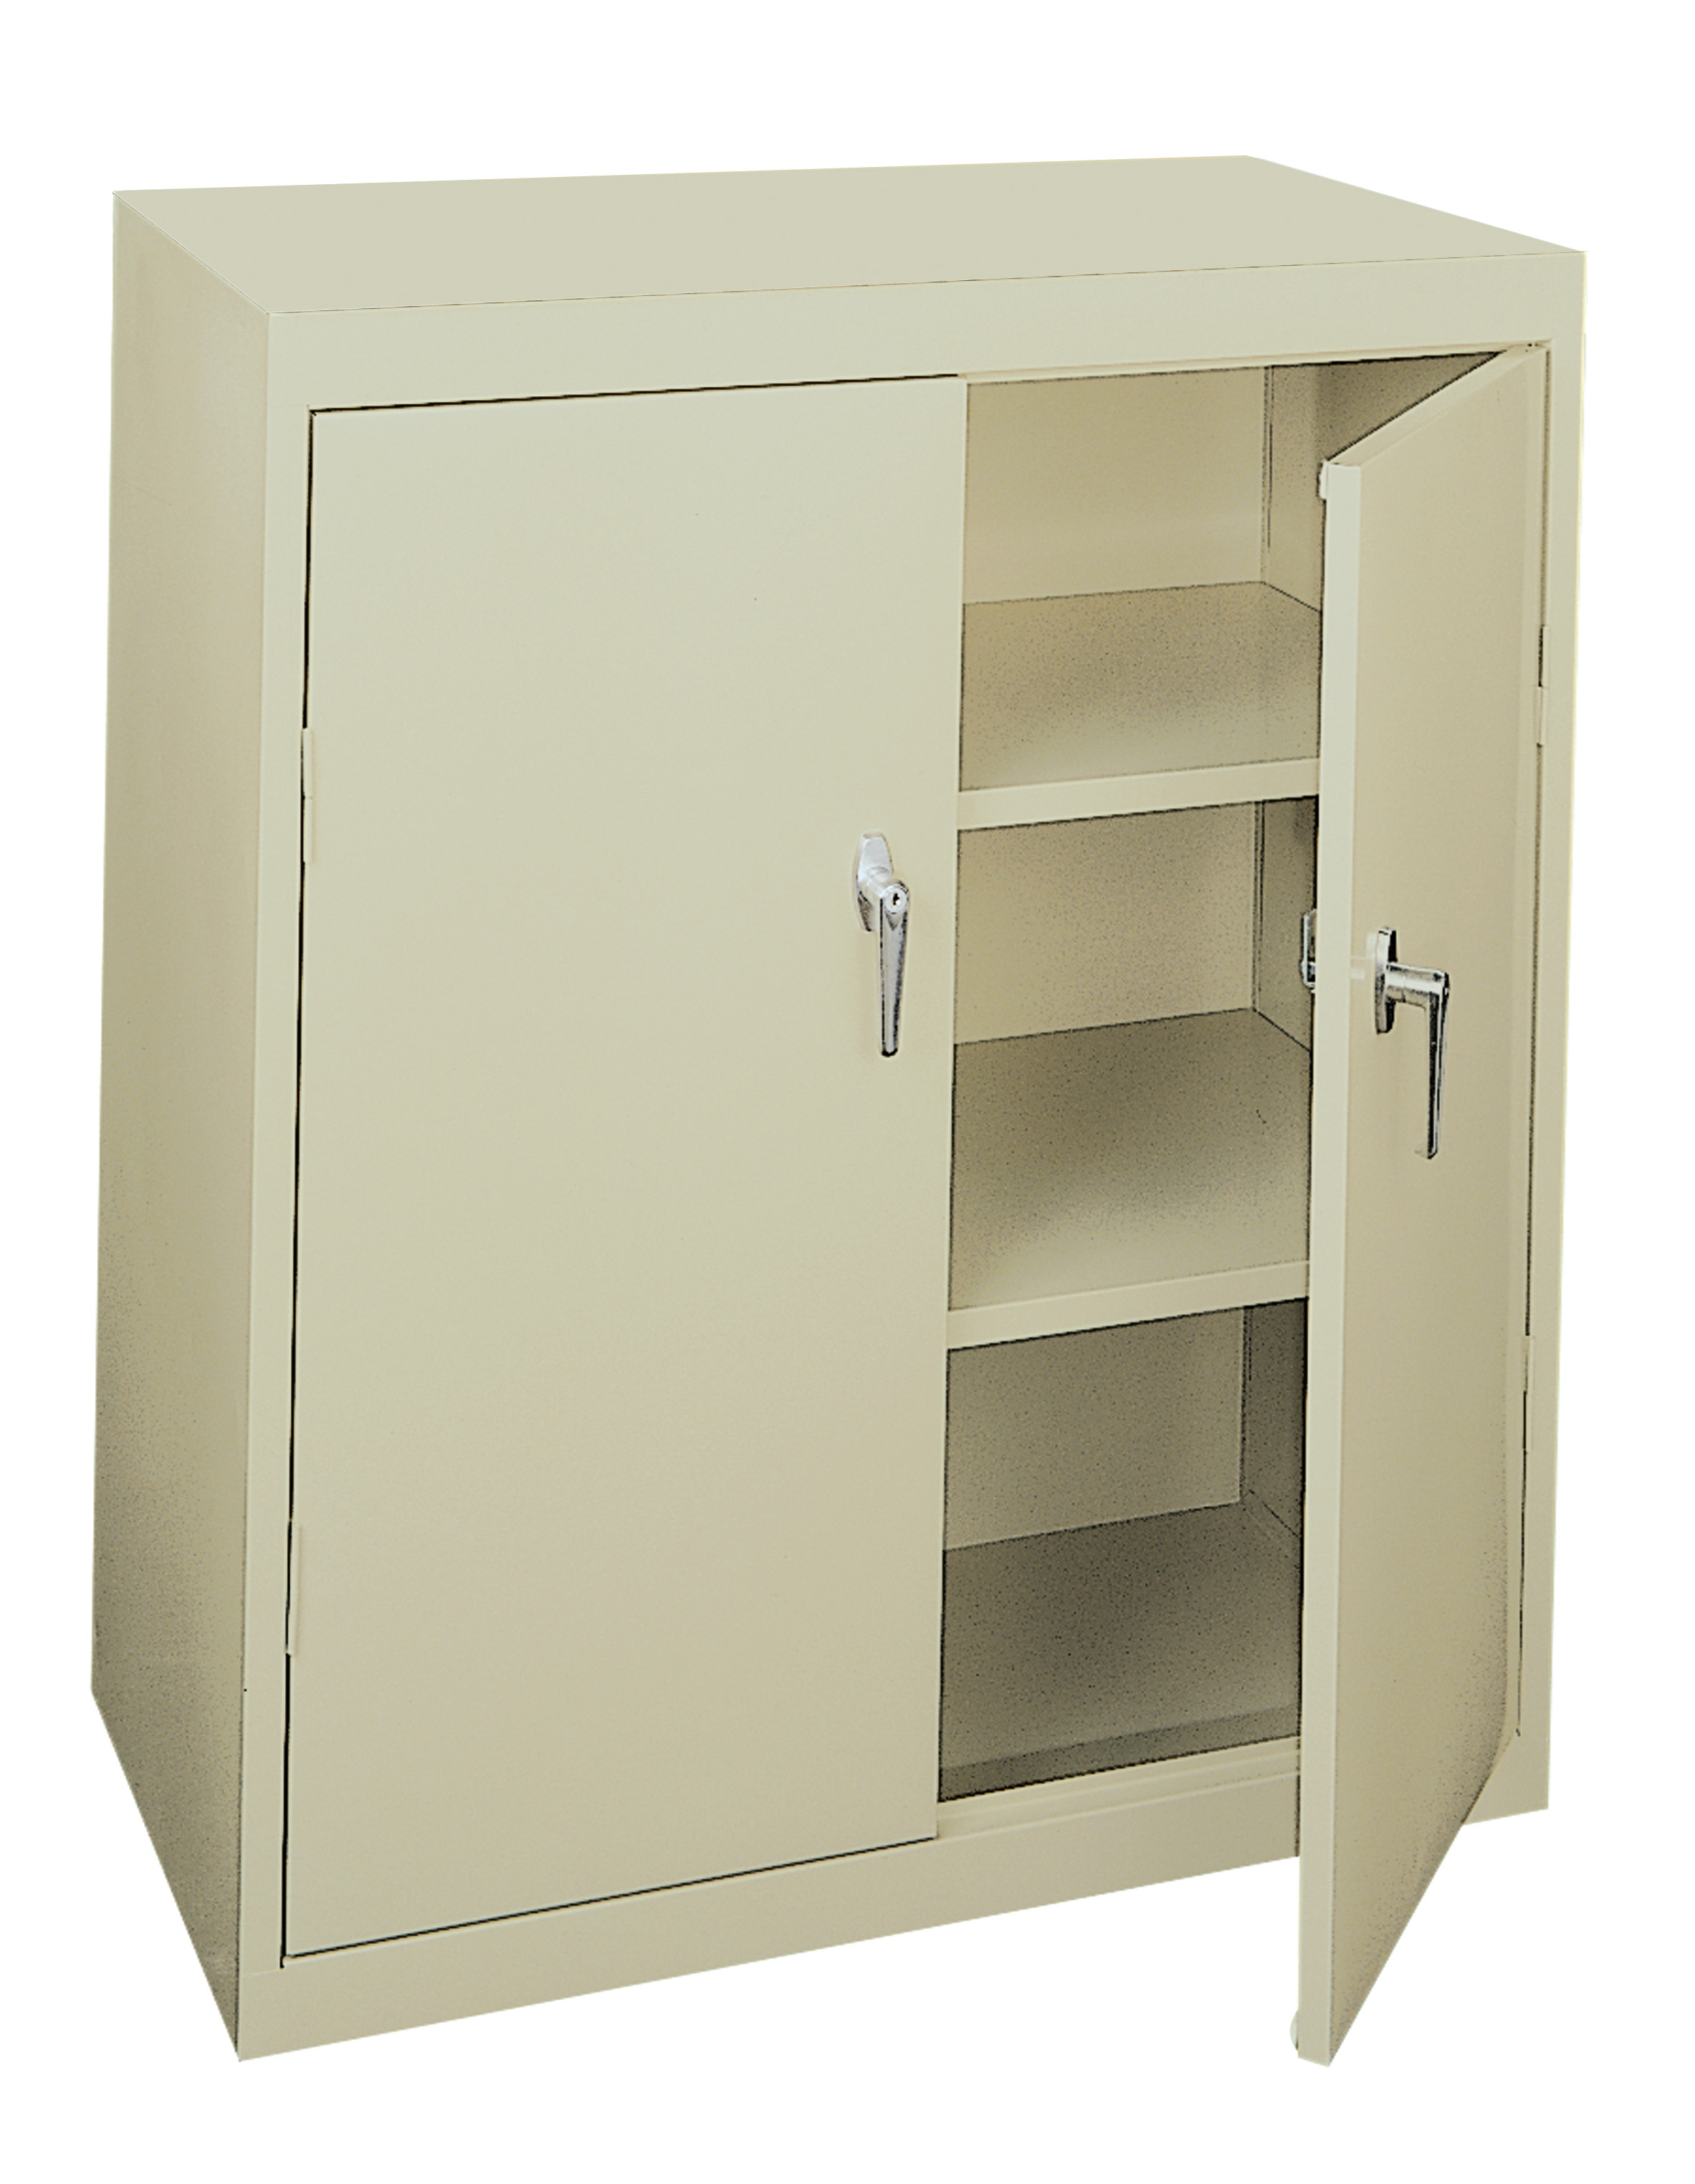 New Storage Cabinets Adjustable Shelves Fixed Shelves